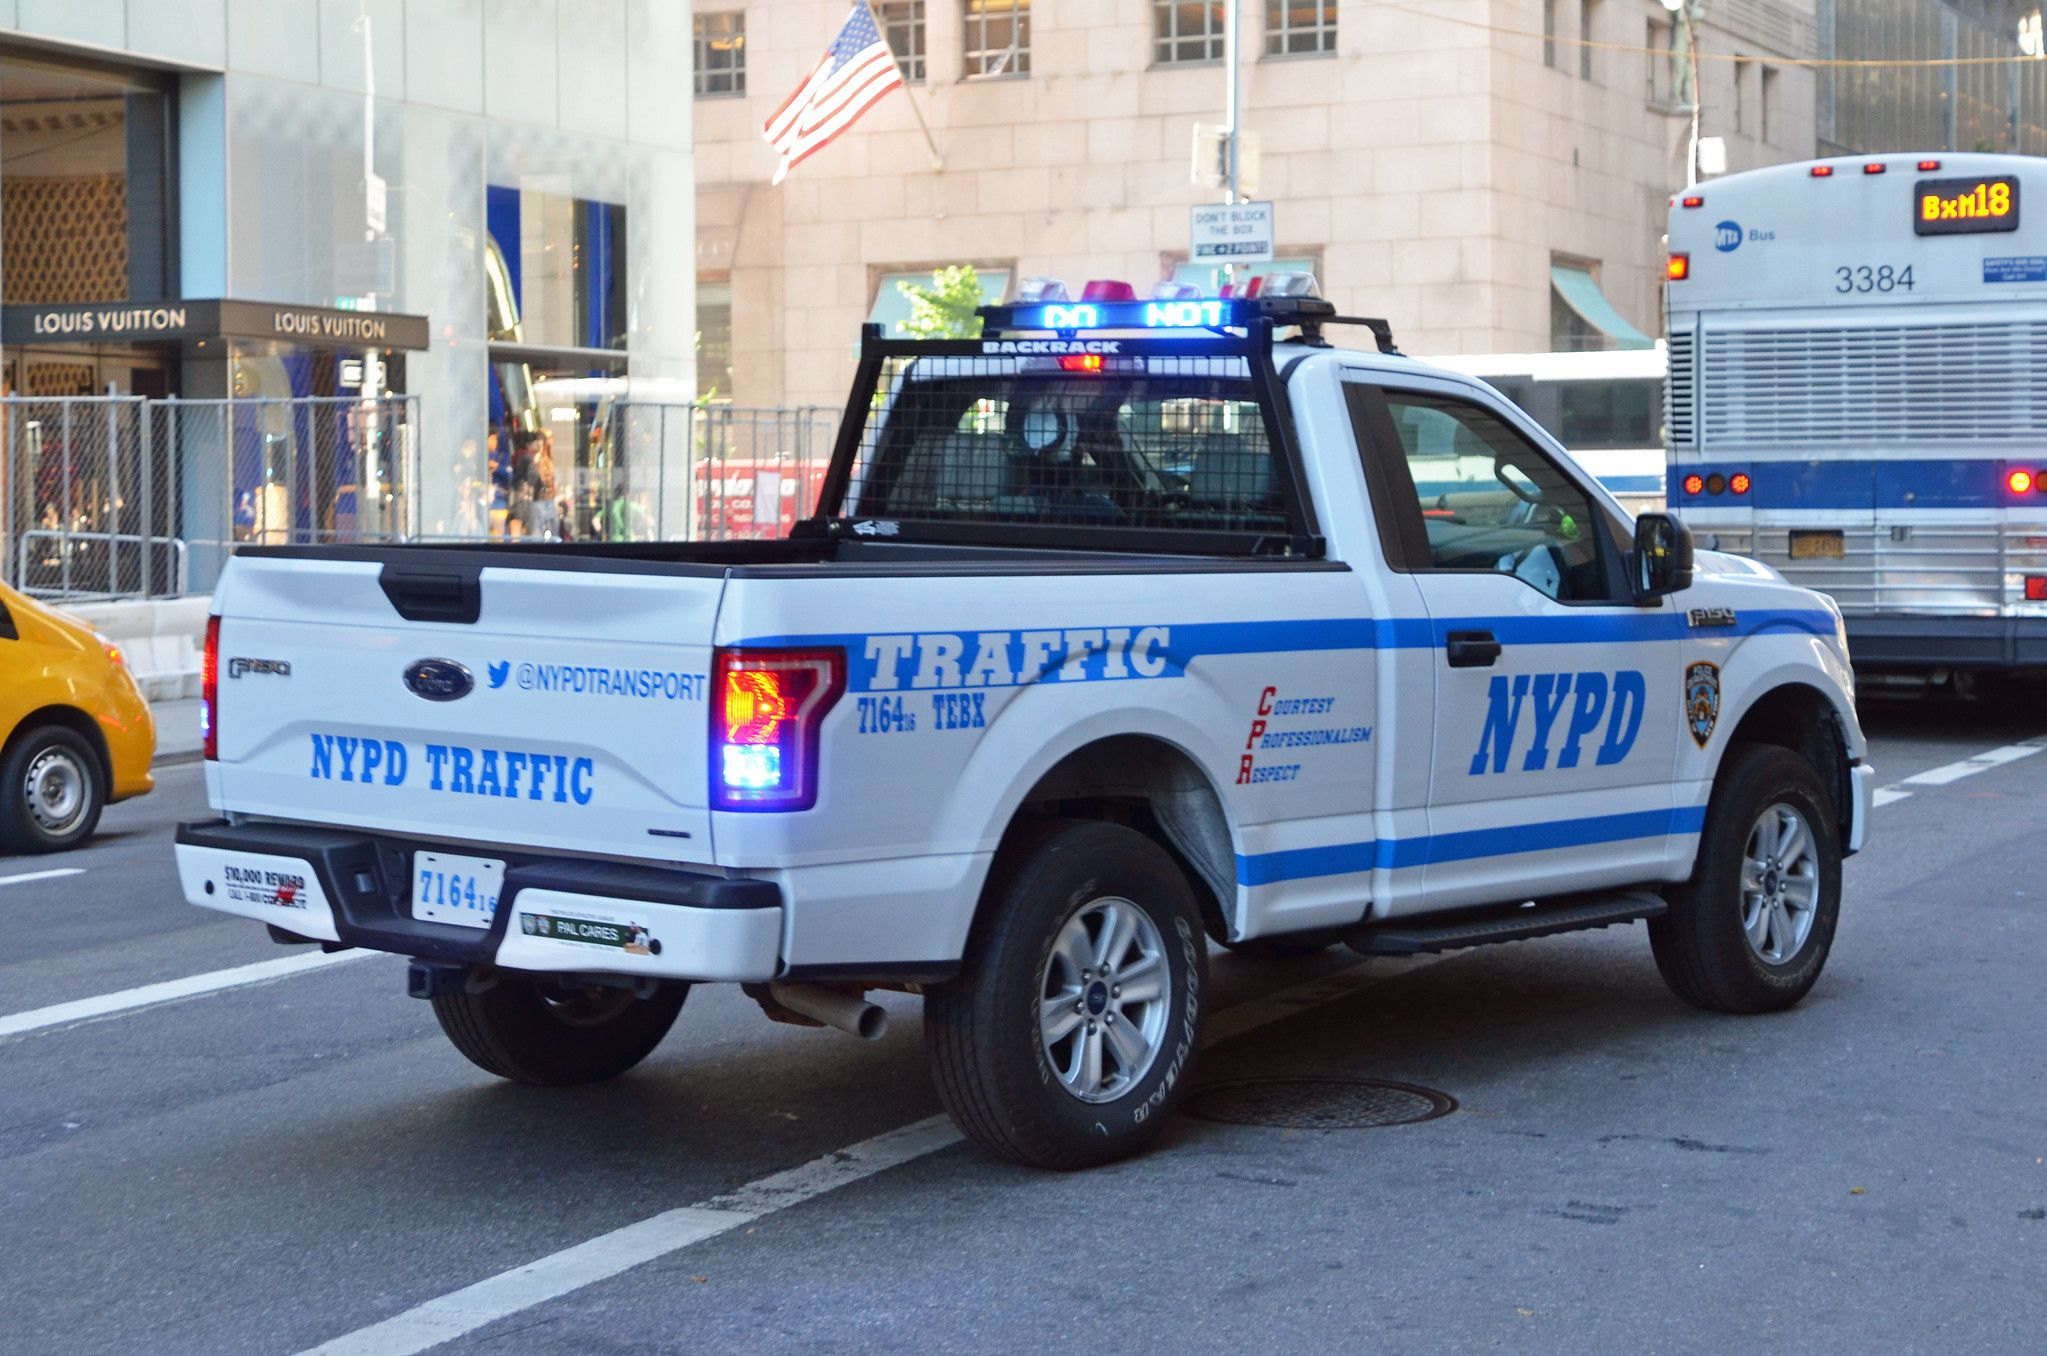 Nypd Traffic 7164 In 2020 Police Truck Old Police Cars Nypd